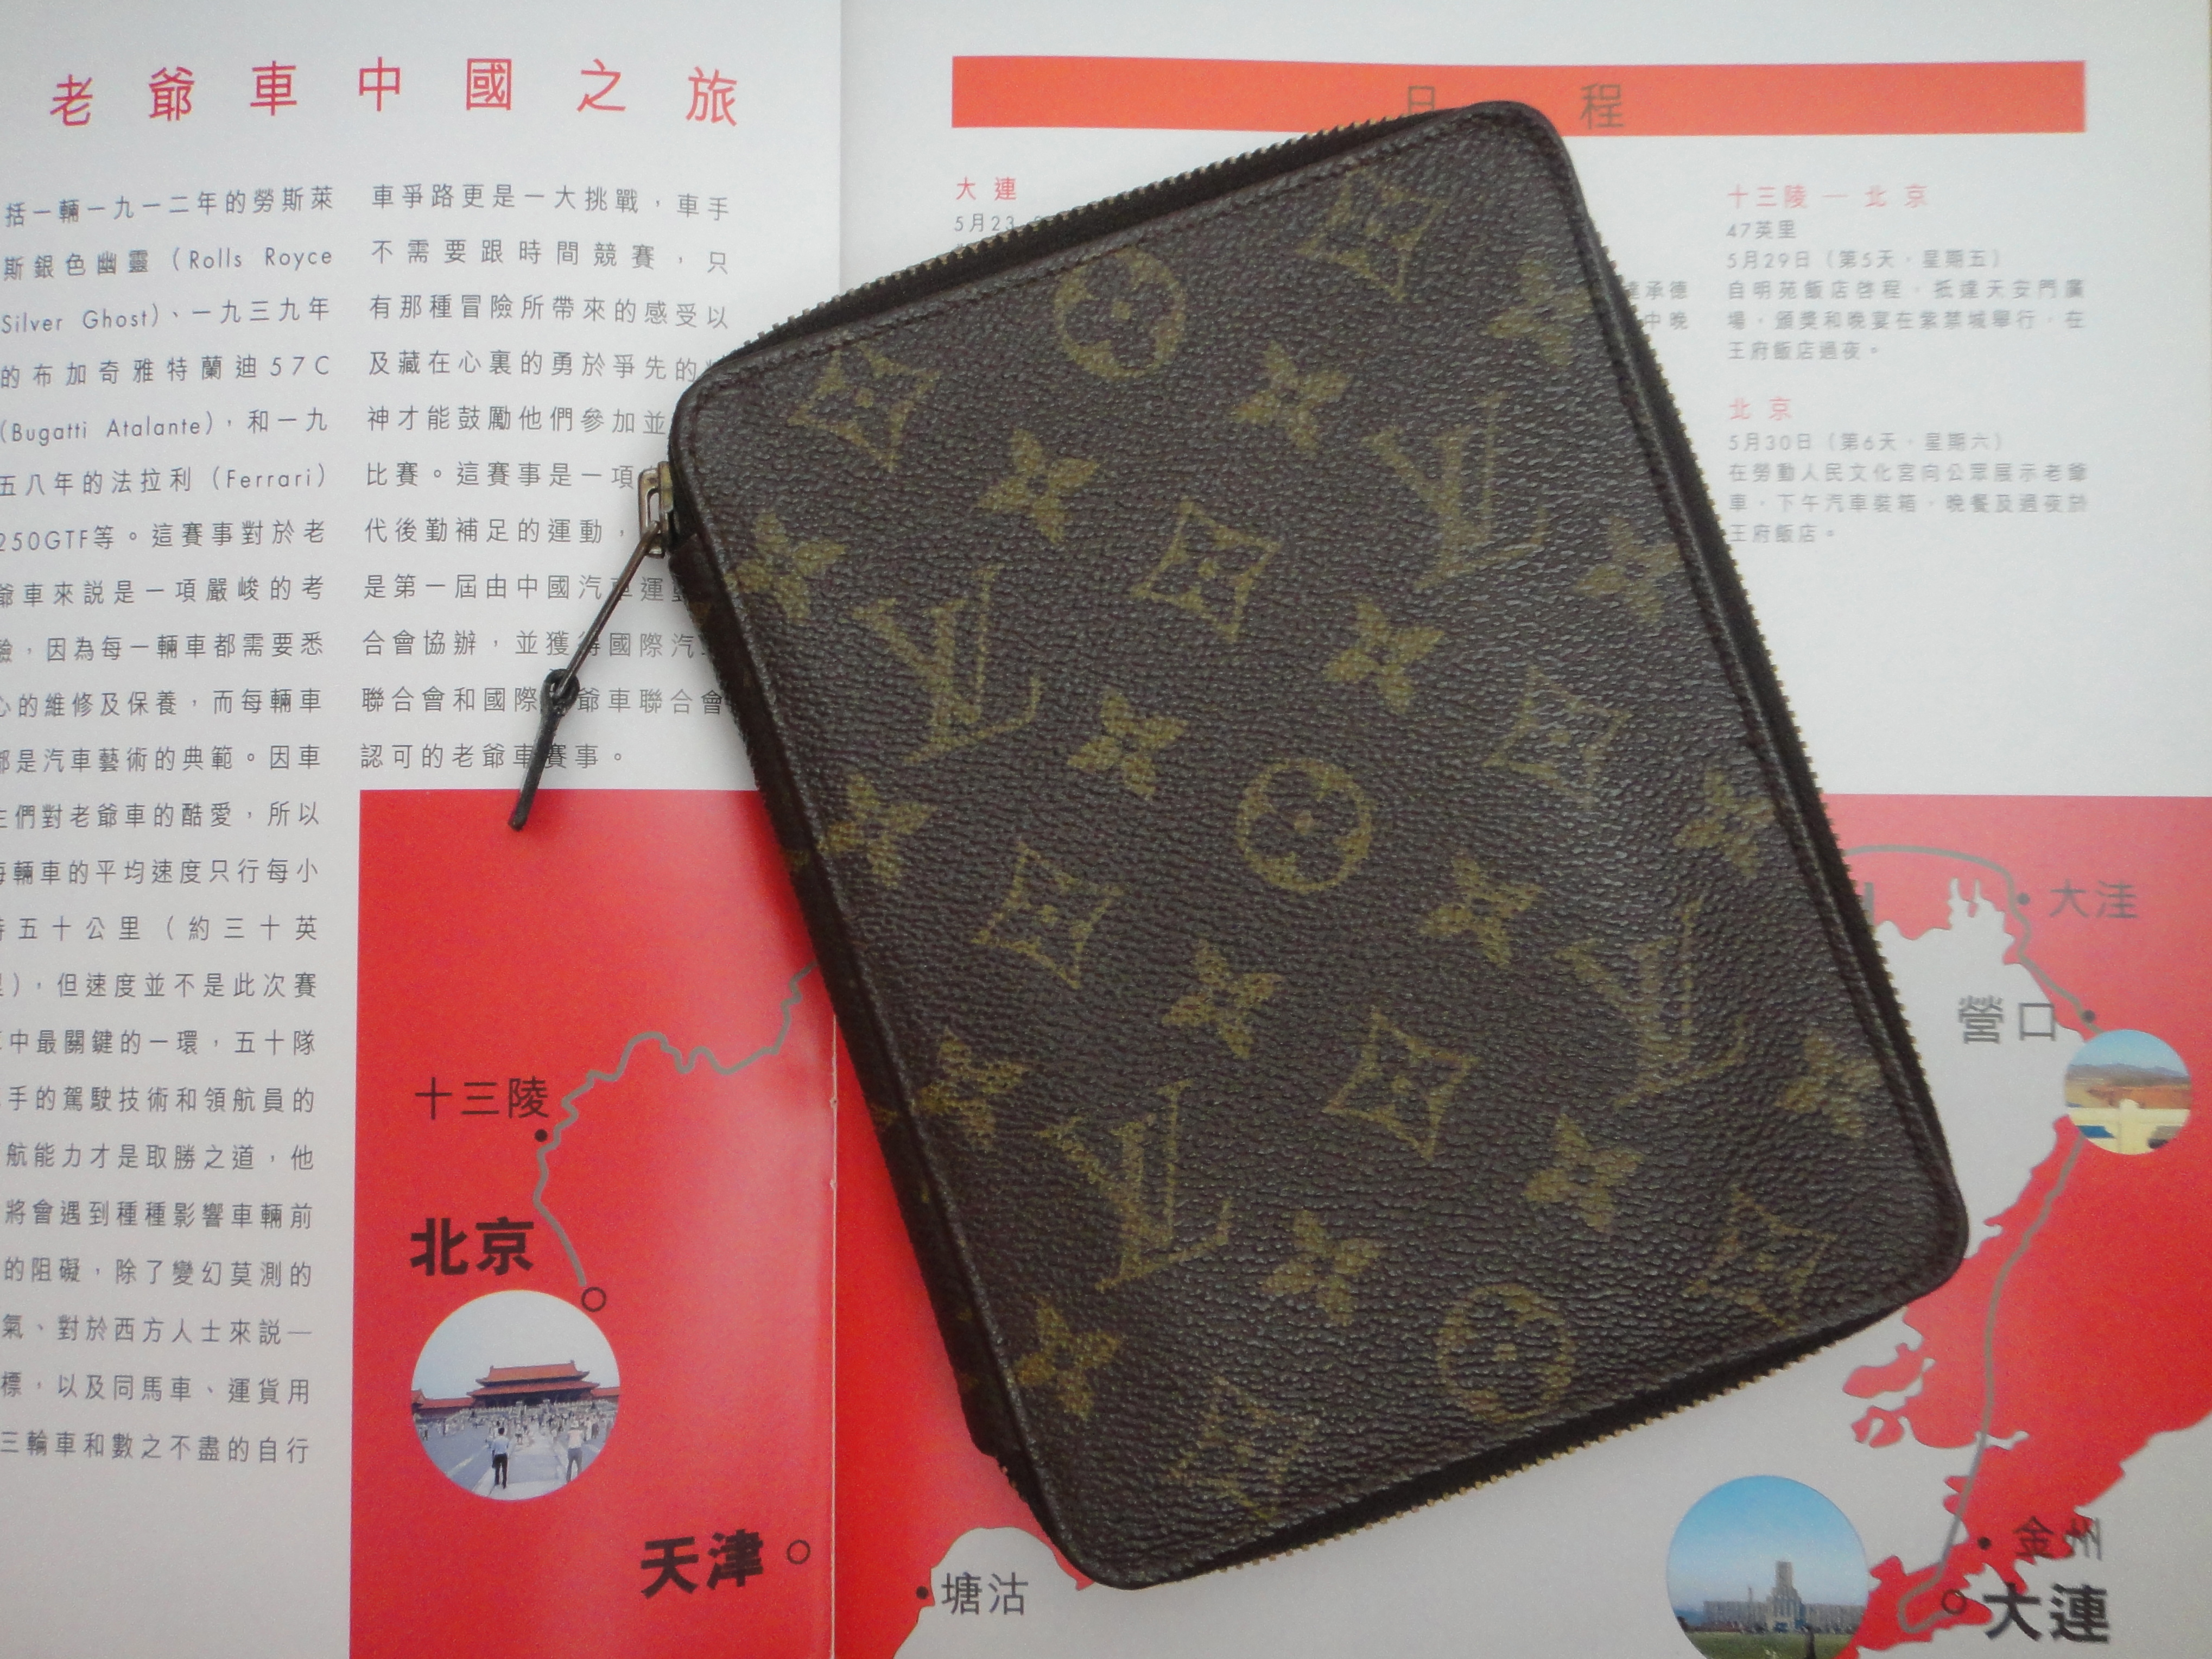 Poche Passport - LV China Run